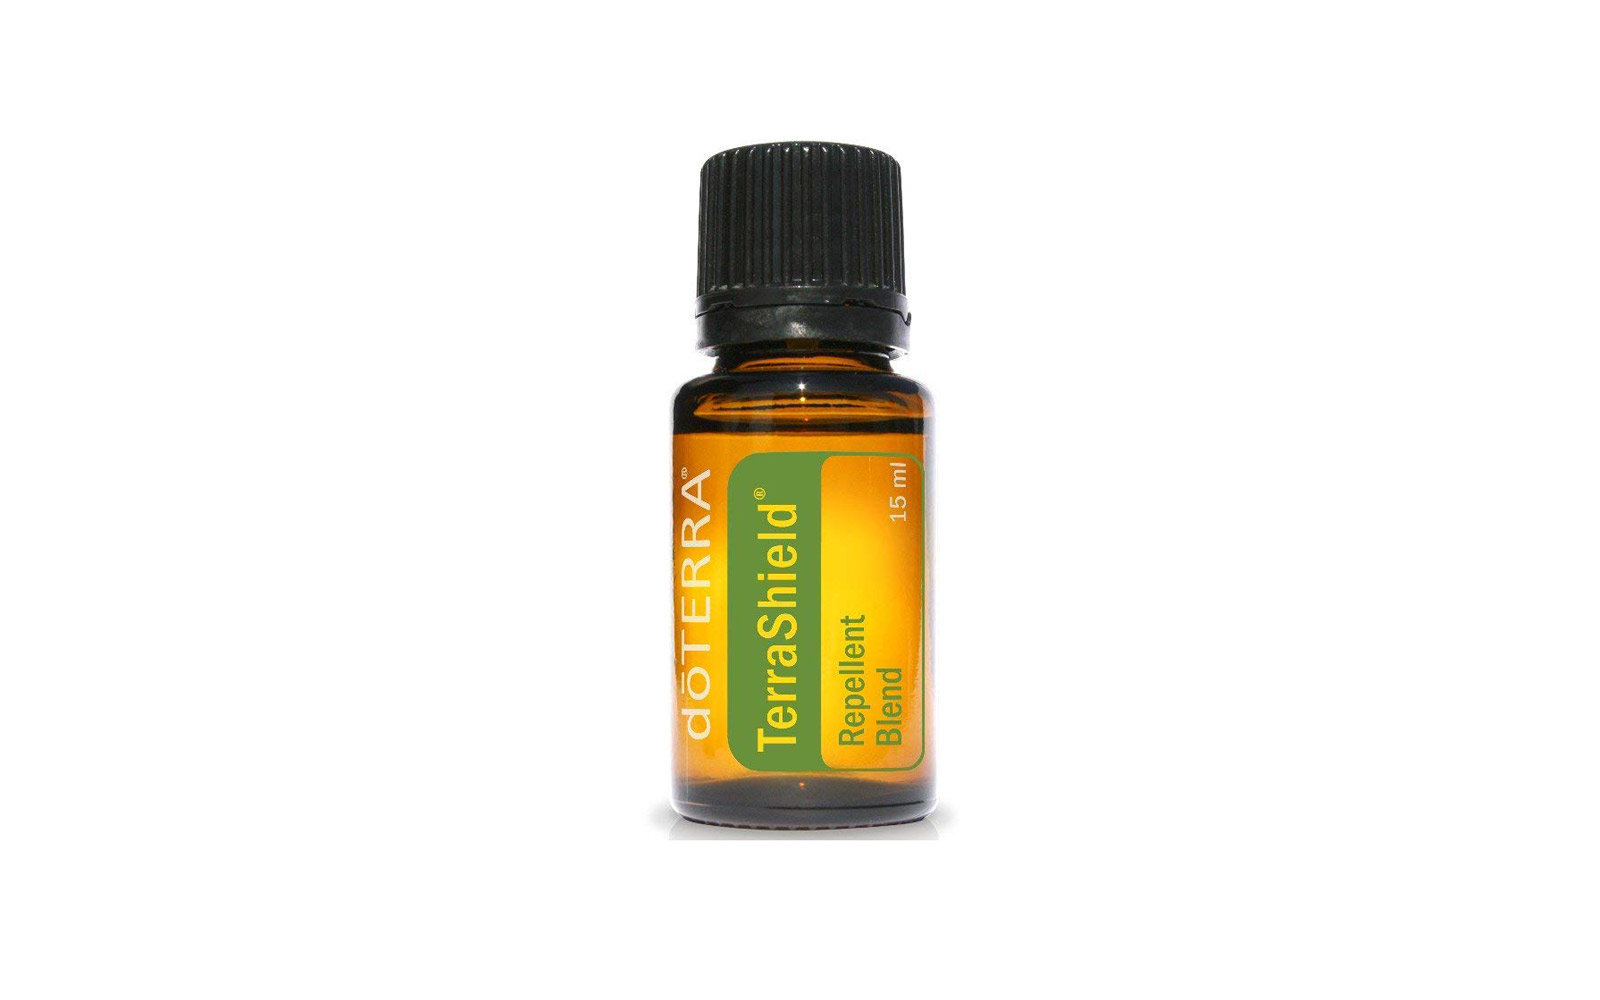 DoTerra TerraShield Essential Oil Repellent Blend